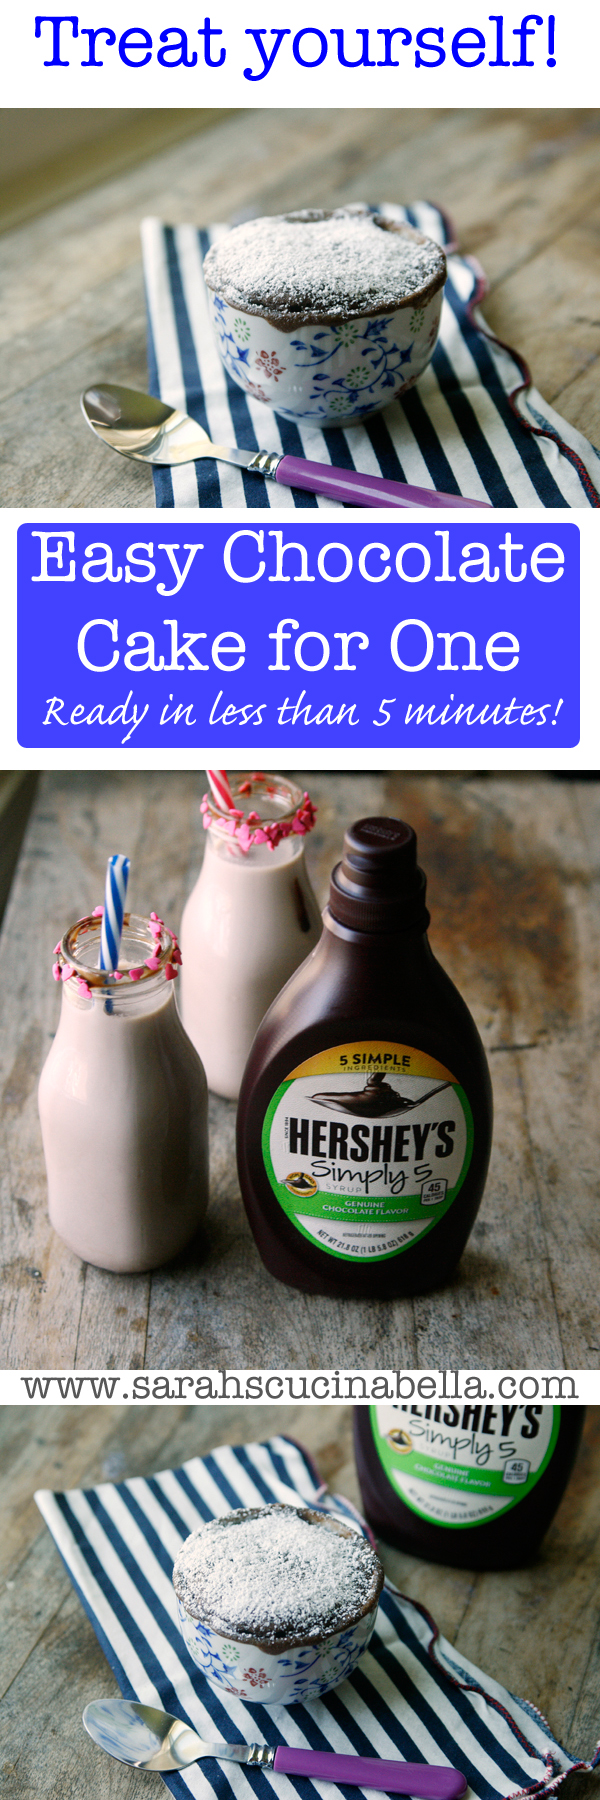 Quick and Easy Chocolate Cake for One is ready in less than 5 minutes with only 6 ingredients!